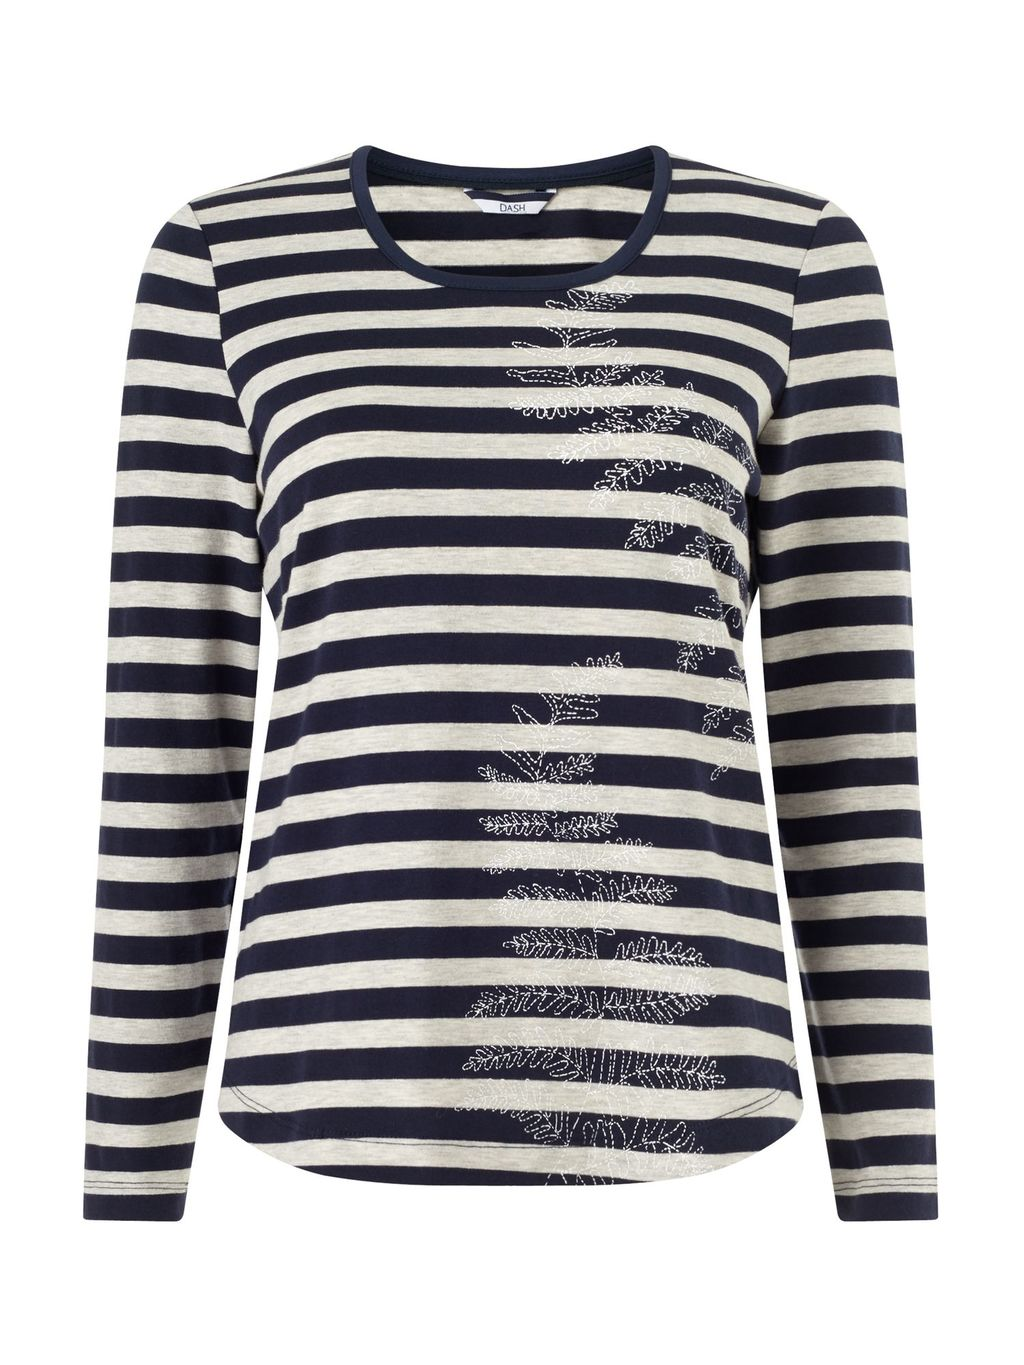 Print Placement Jersey Top, Multi Coloured - neckline: round neck; pattern: horizontal stripes; style: t-shirt; secondary colour: white; predominant colour: navy; occasions: casual, creative work; length: standard; fibres: cotton - mix; fit: body skimming; sleeve length: long sleeve; sleeve style: standard; pattern type: fabric; pattern size: light/subtle; texture group: jersey - stretchy/drapey; season: s/s 2016; trends: graphic stripes; wardrobe: basic